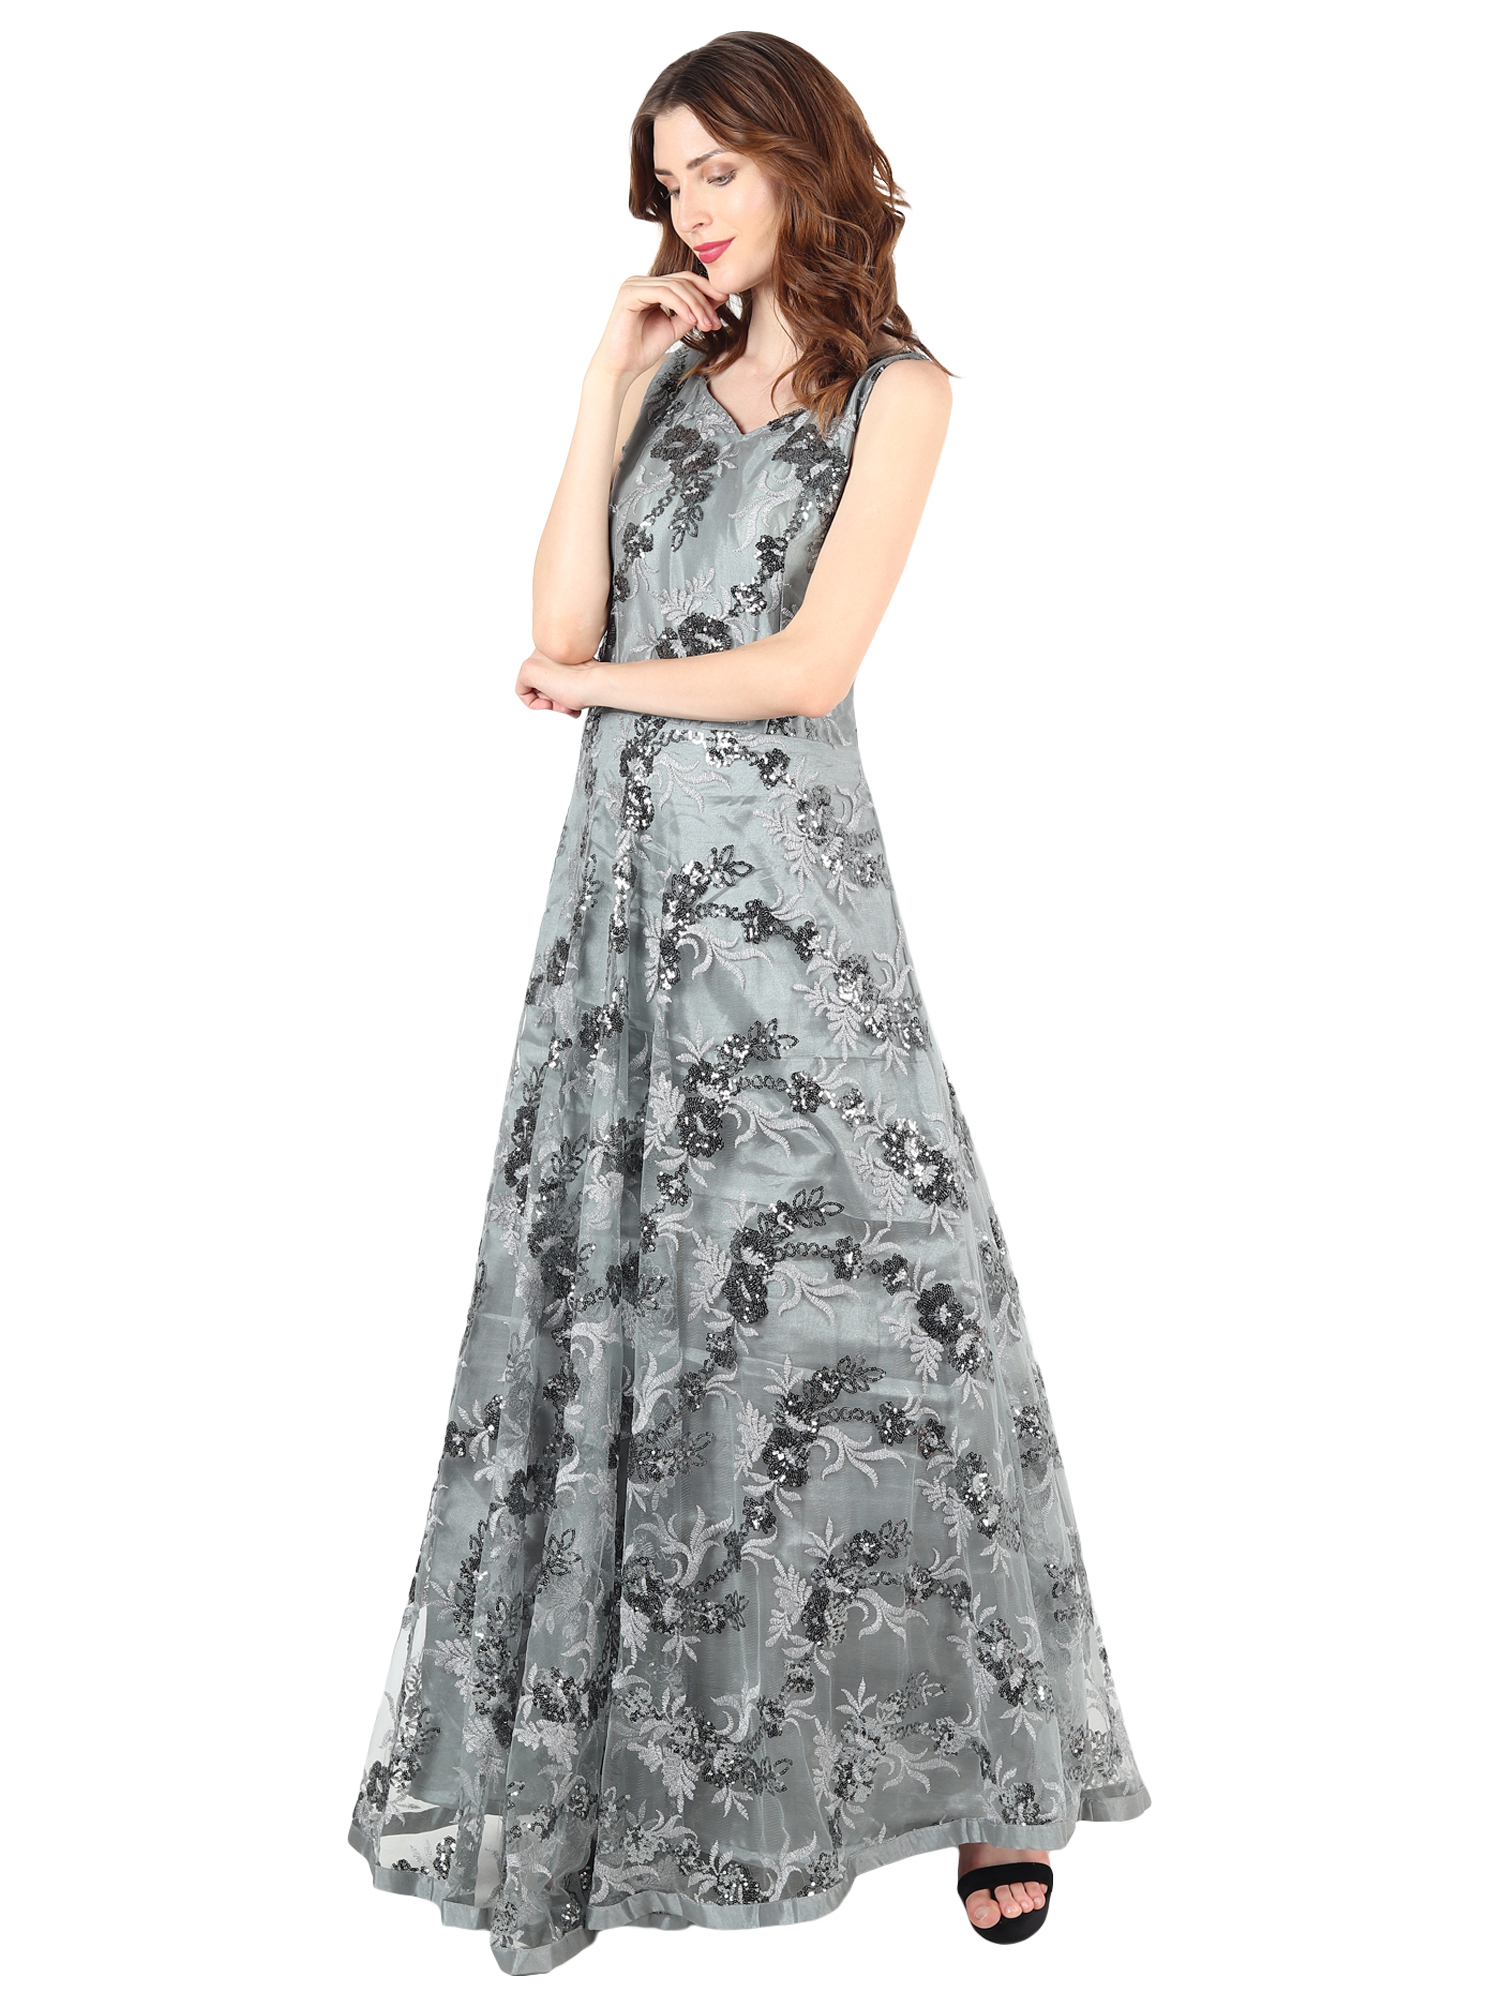 Designer Sequence Gown